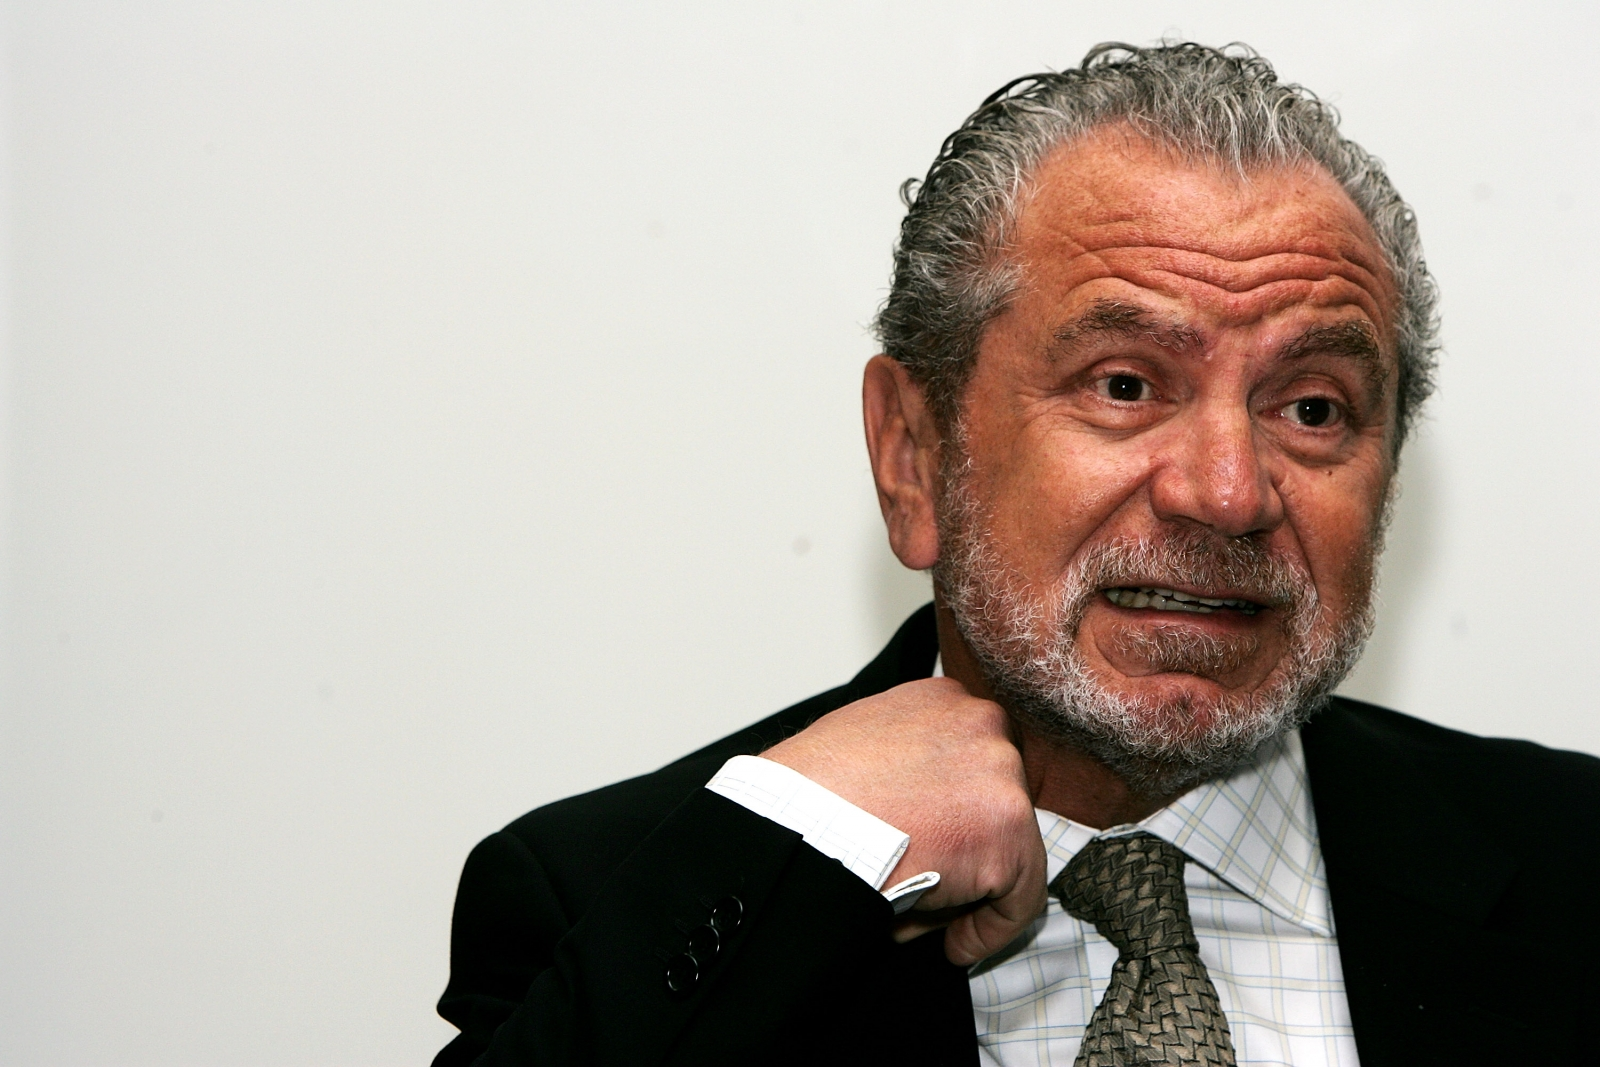 alan sugar Lord alan sugar latest news, age and shows discover most up-to-date lord alan sugar information and facts.